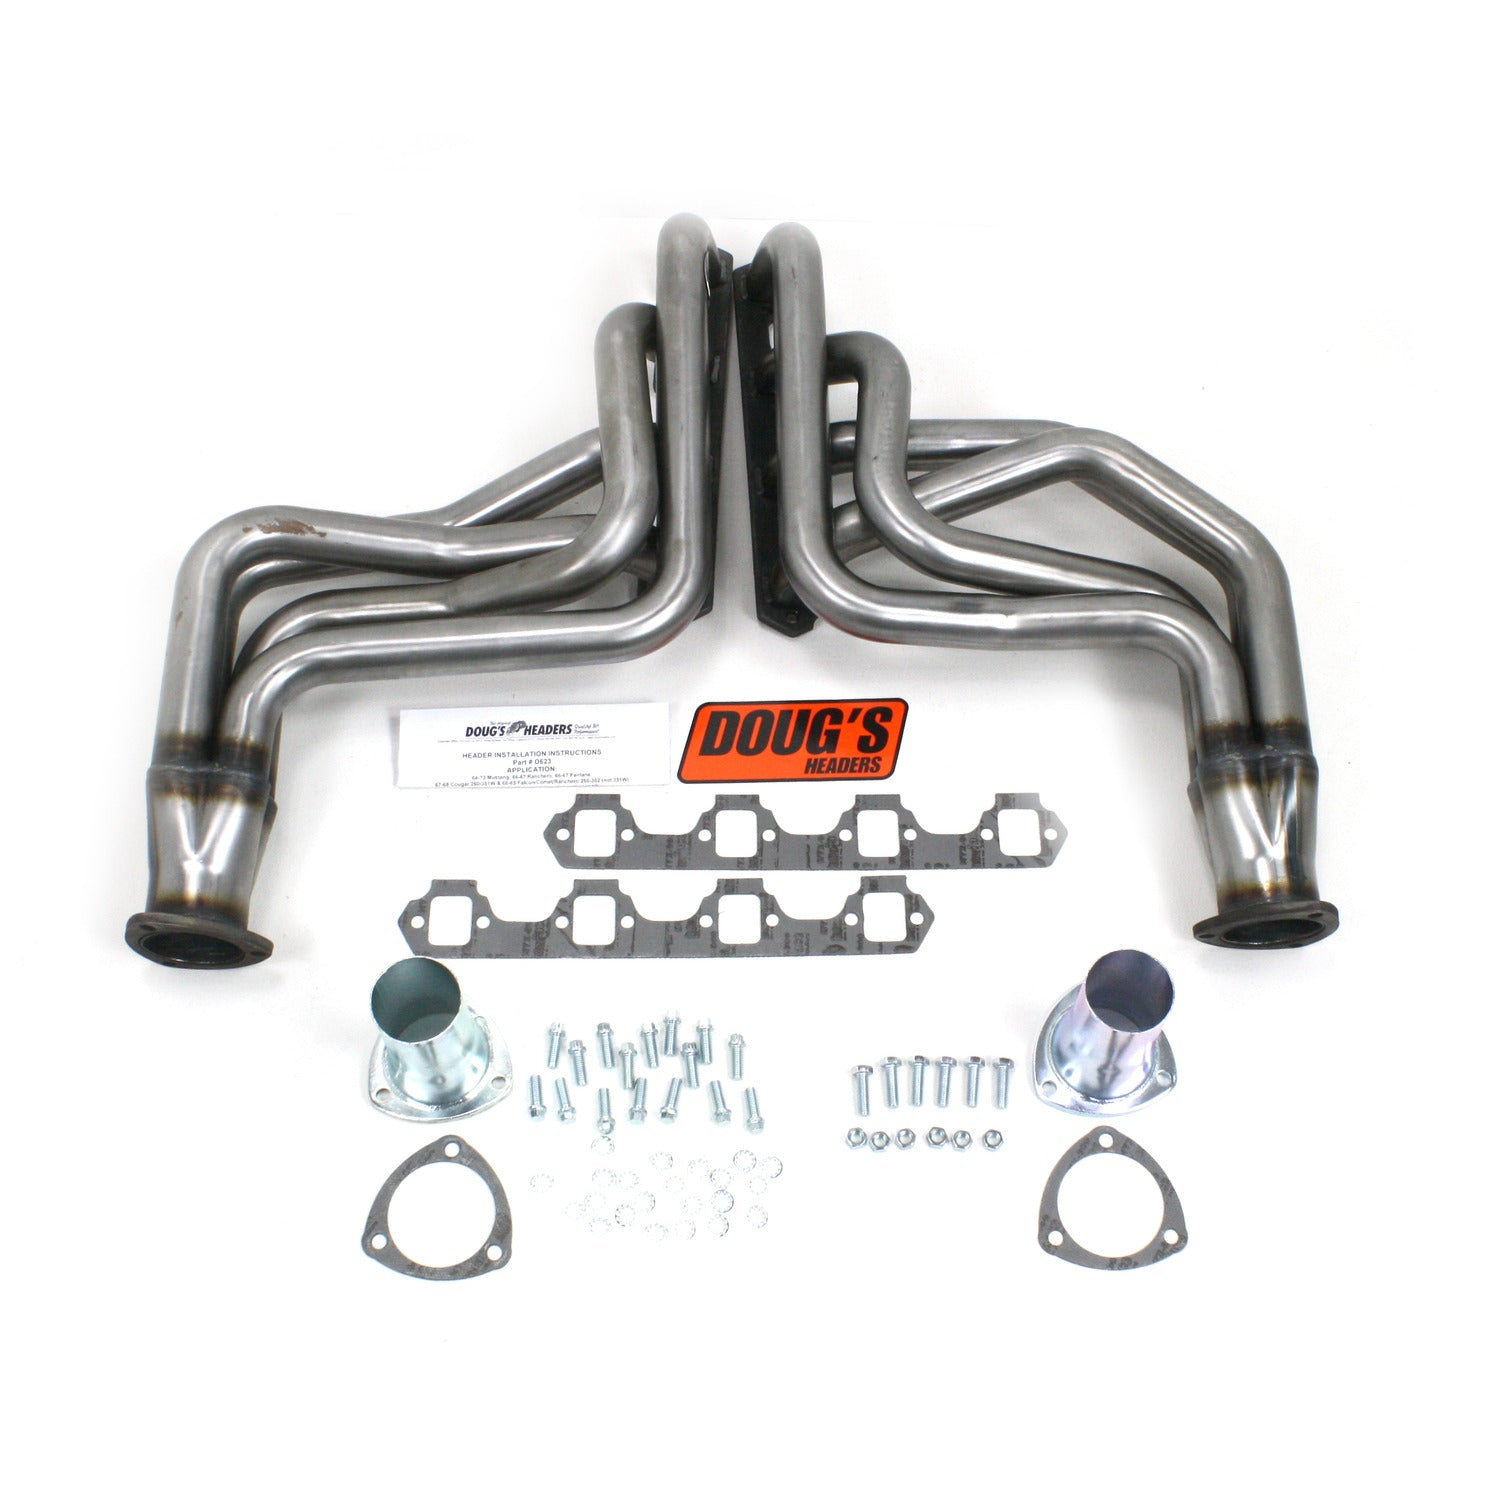 "Doug's Headers D623-R 1 3/4"" 4-Tube Full Length Header Ford Mustang  64-73 Cougar 67-68 Fairlane 66-67 Falcon 60-65 Comet 62-65 Ranchero 60-67 260-351W with TCI or similar Mustang II Steering Swap Raw Steel"